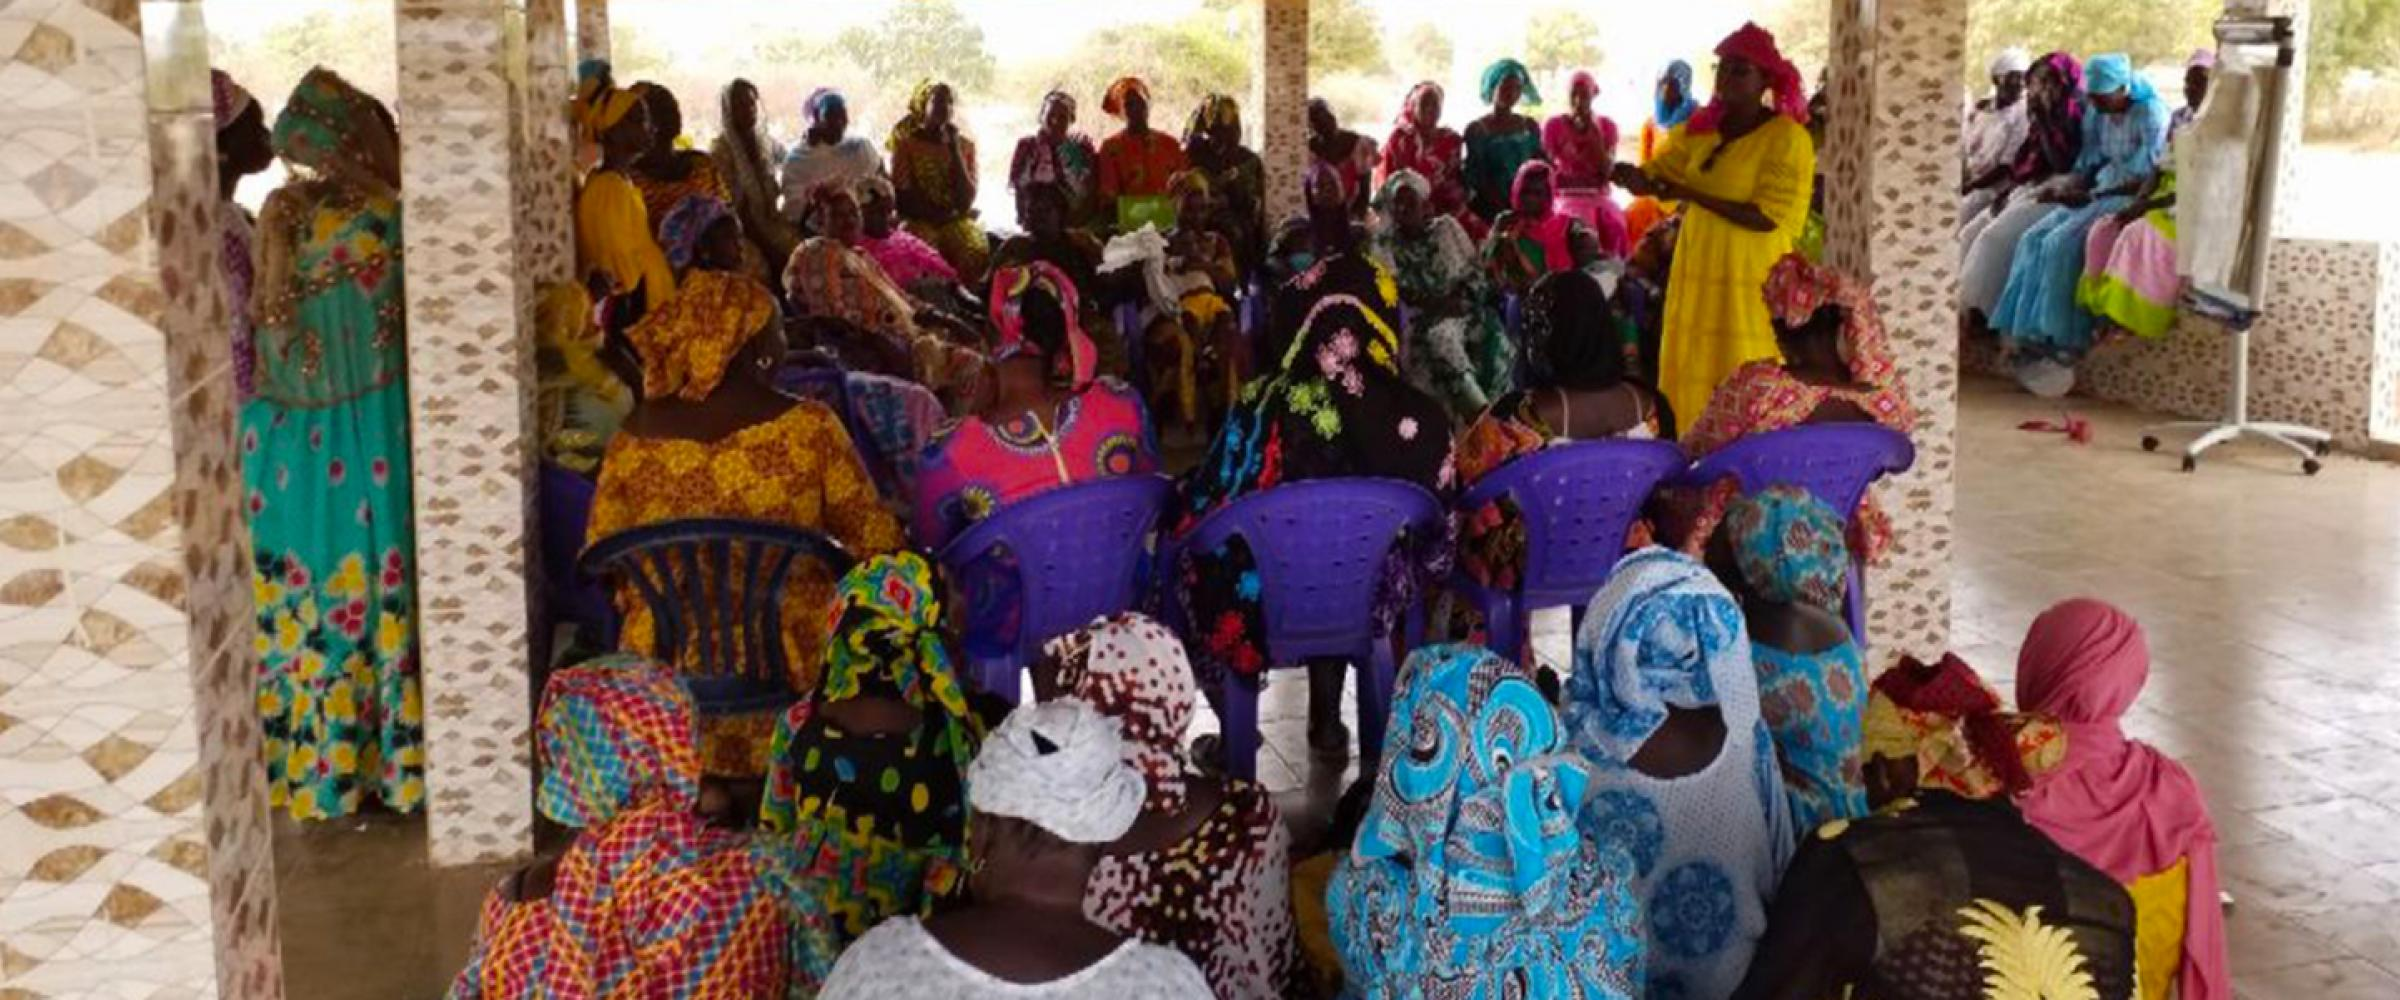 The project works with over 35 local women's associations in the Taiba N'diaye commune.